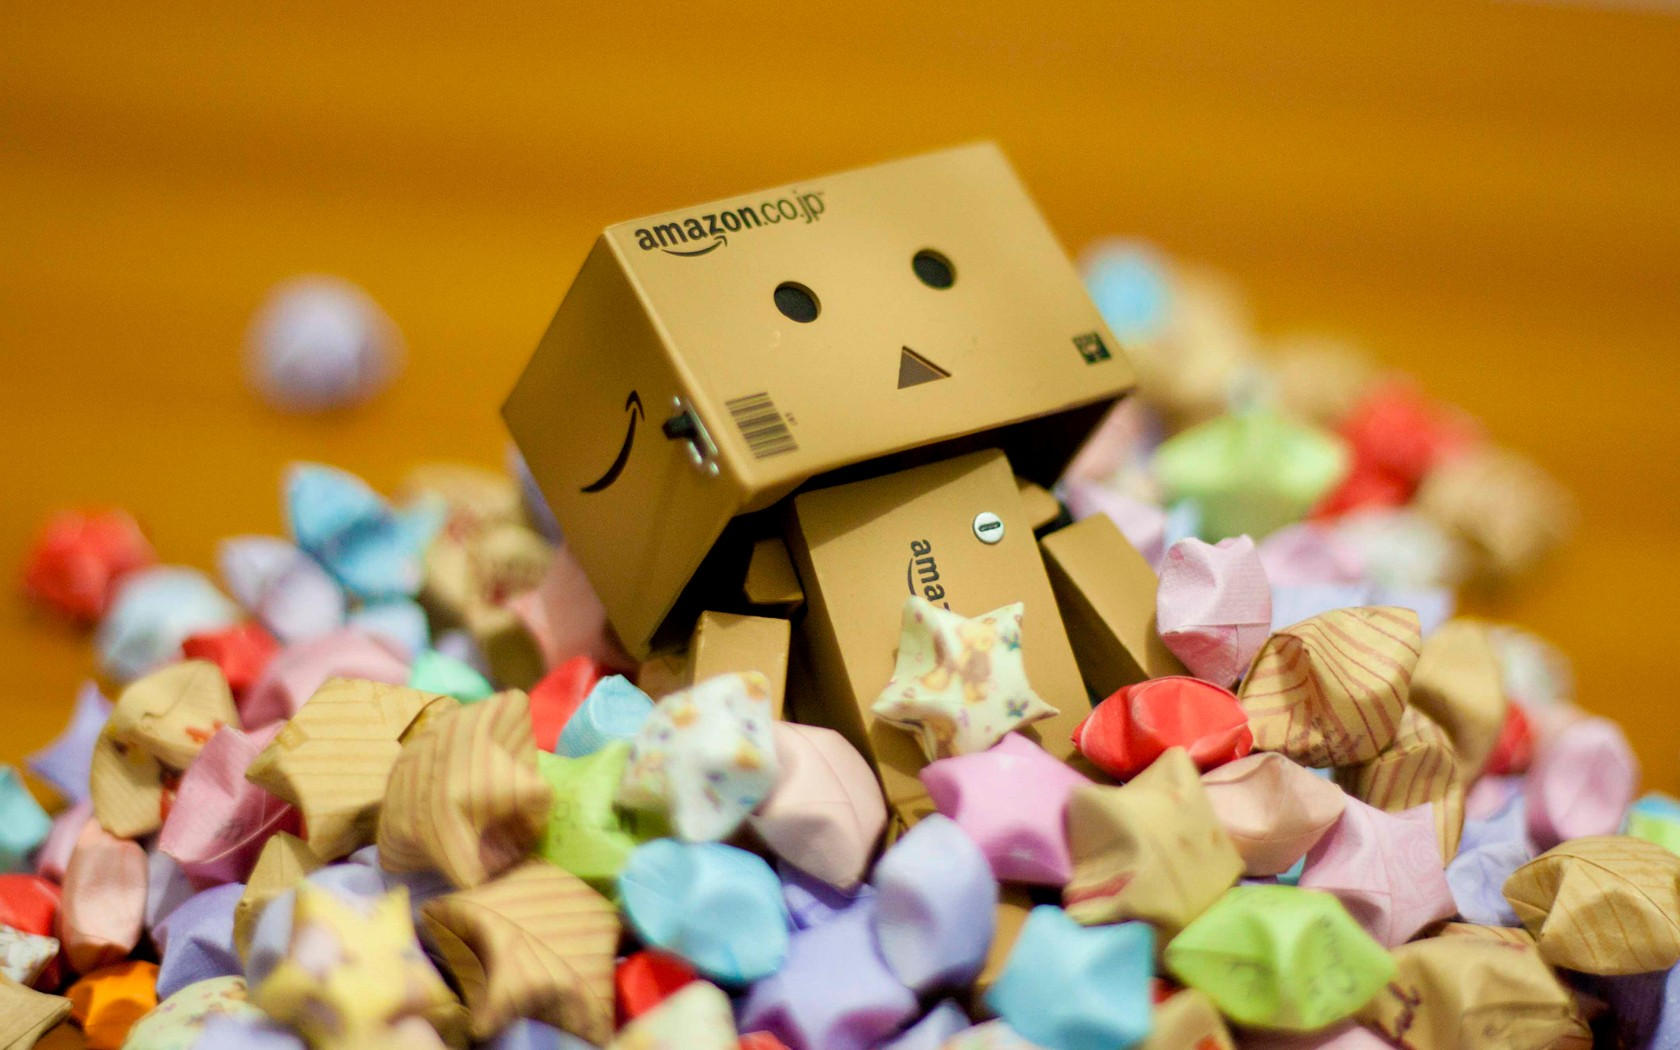 Cute Danbo Wallpaper 222